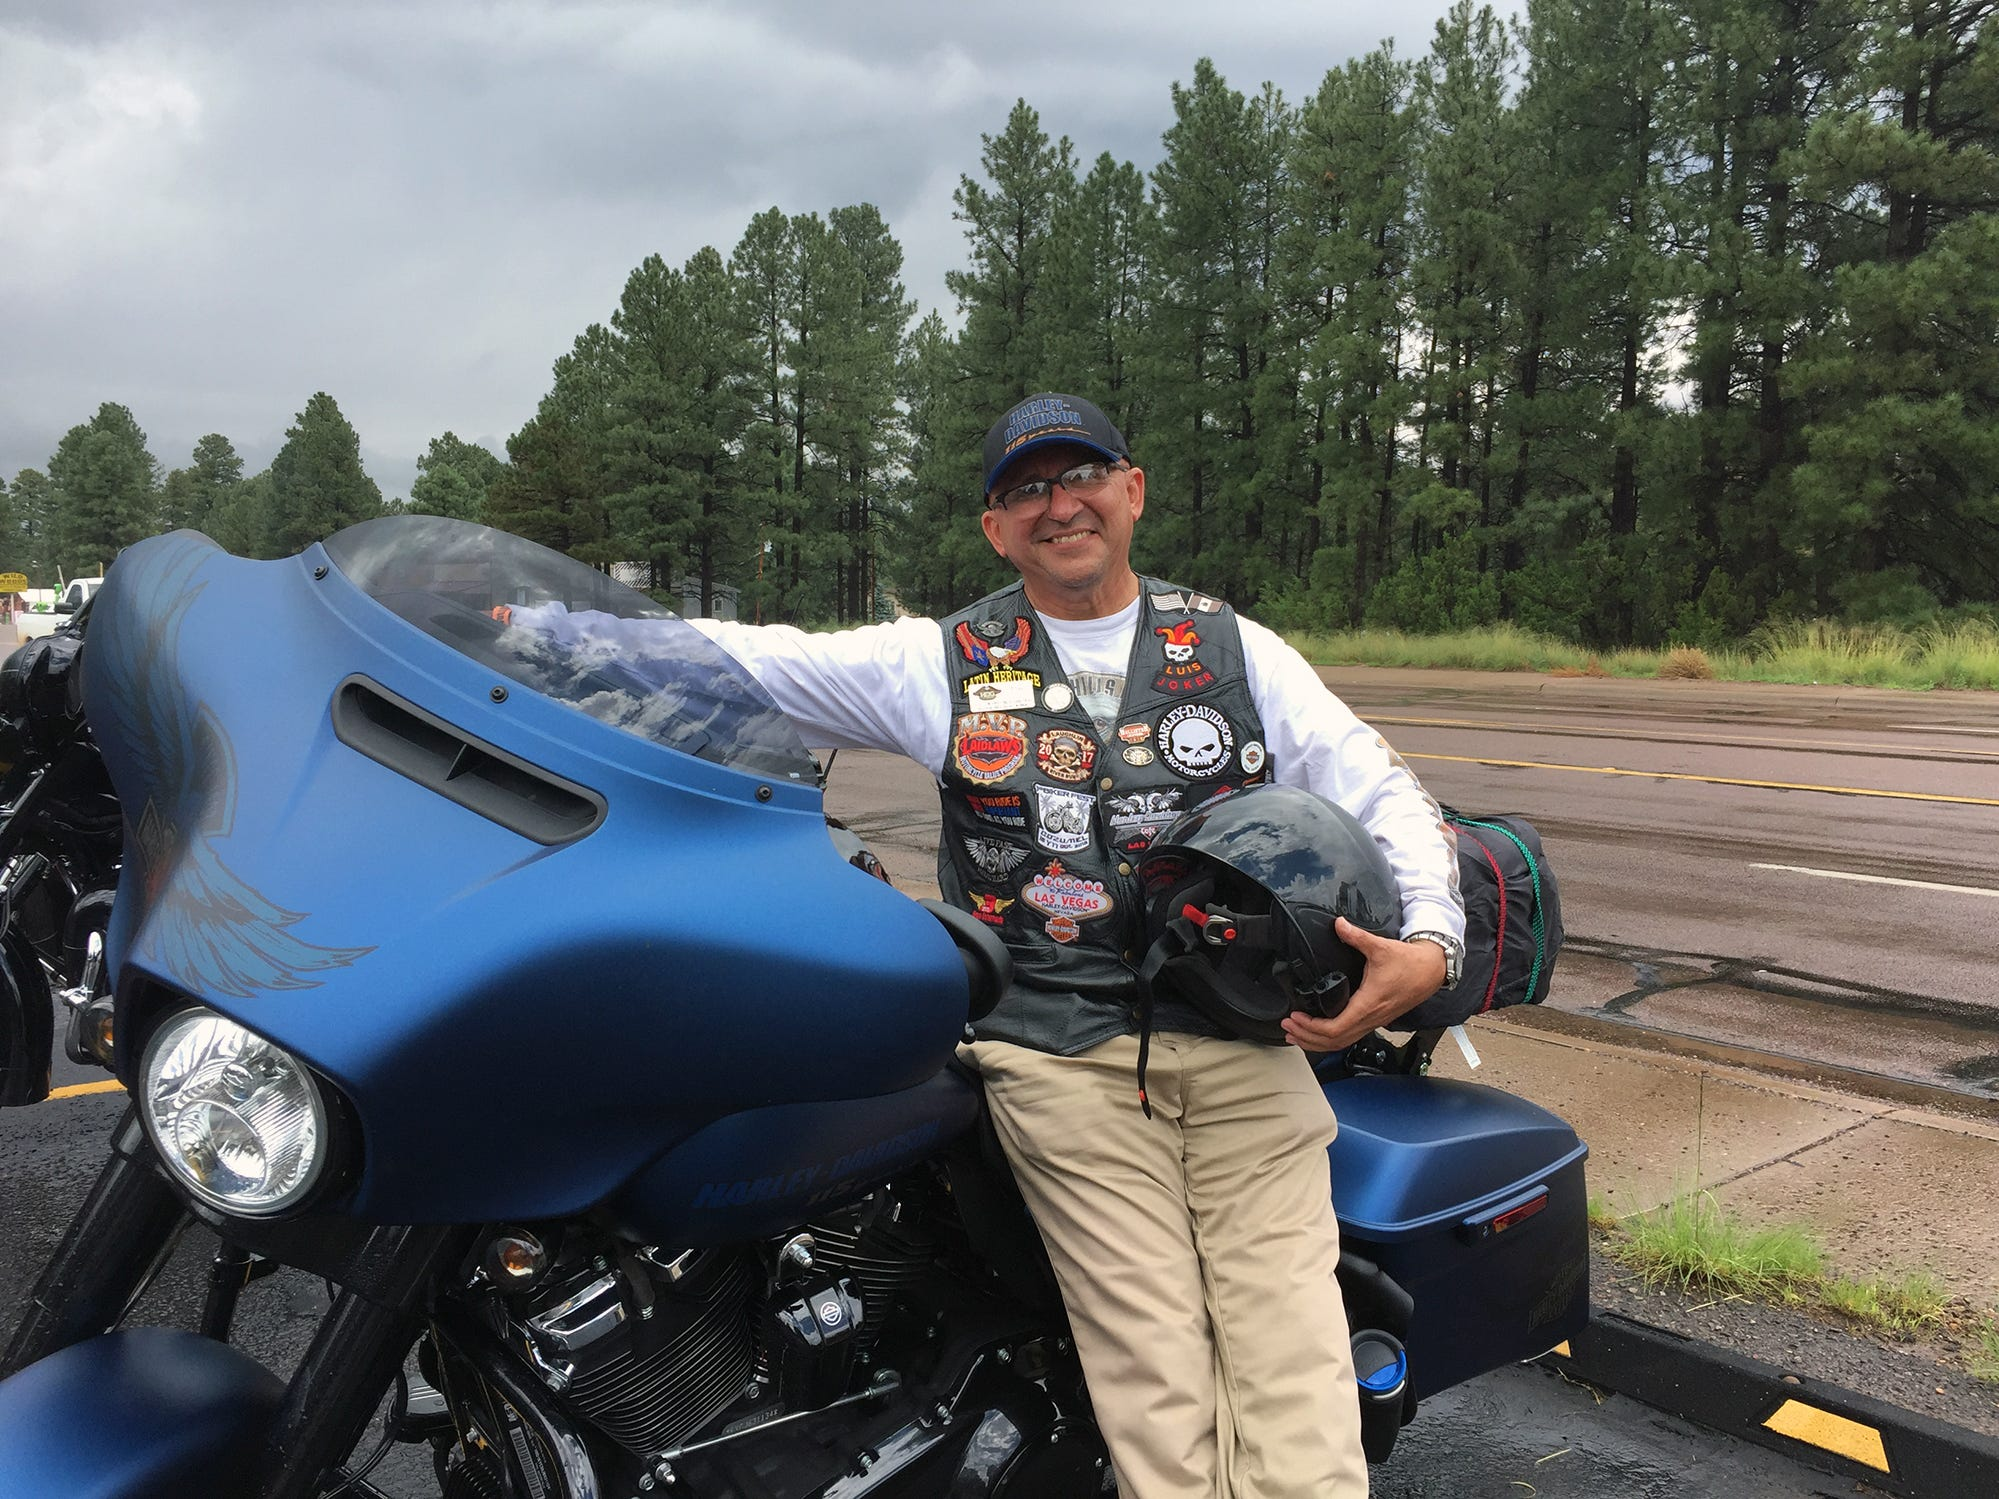 "Luis Burgos, 56, of Anaheim, joined the Southwest Harley-Davidson 115th anniversary trip in Yuma, Arizona. After riding in 112-degree temperatures, he said he was happy to see the clouds come out in Payson, Arizona. ""I don't mind the clouds,"" he said. ""They make me enjoy the ride even more."""